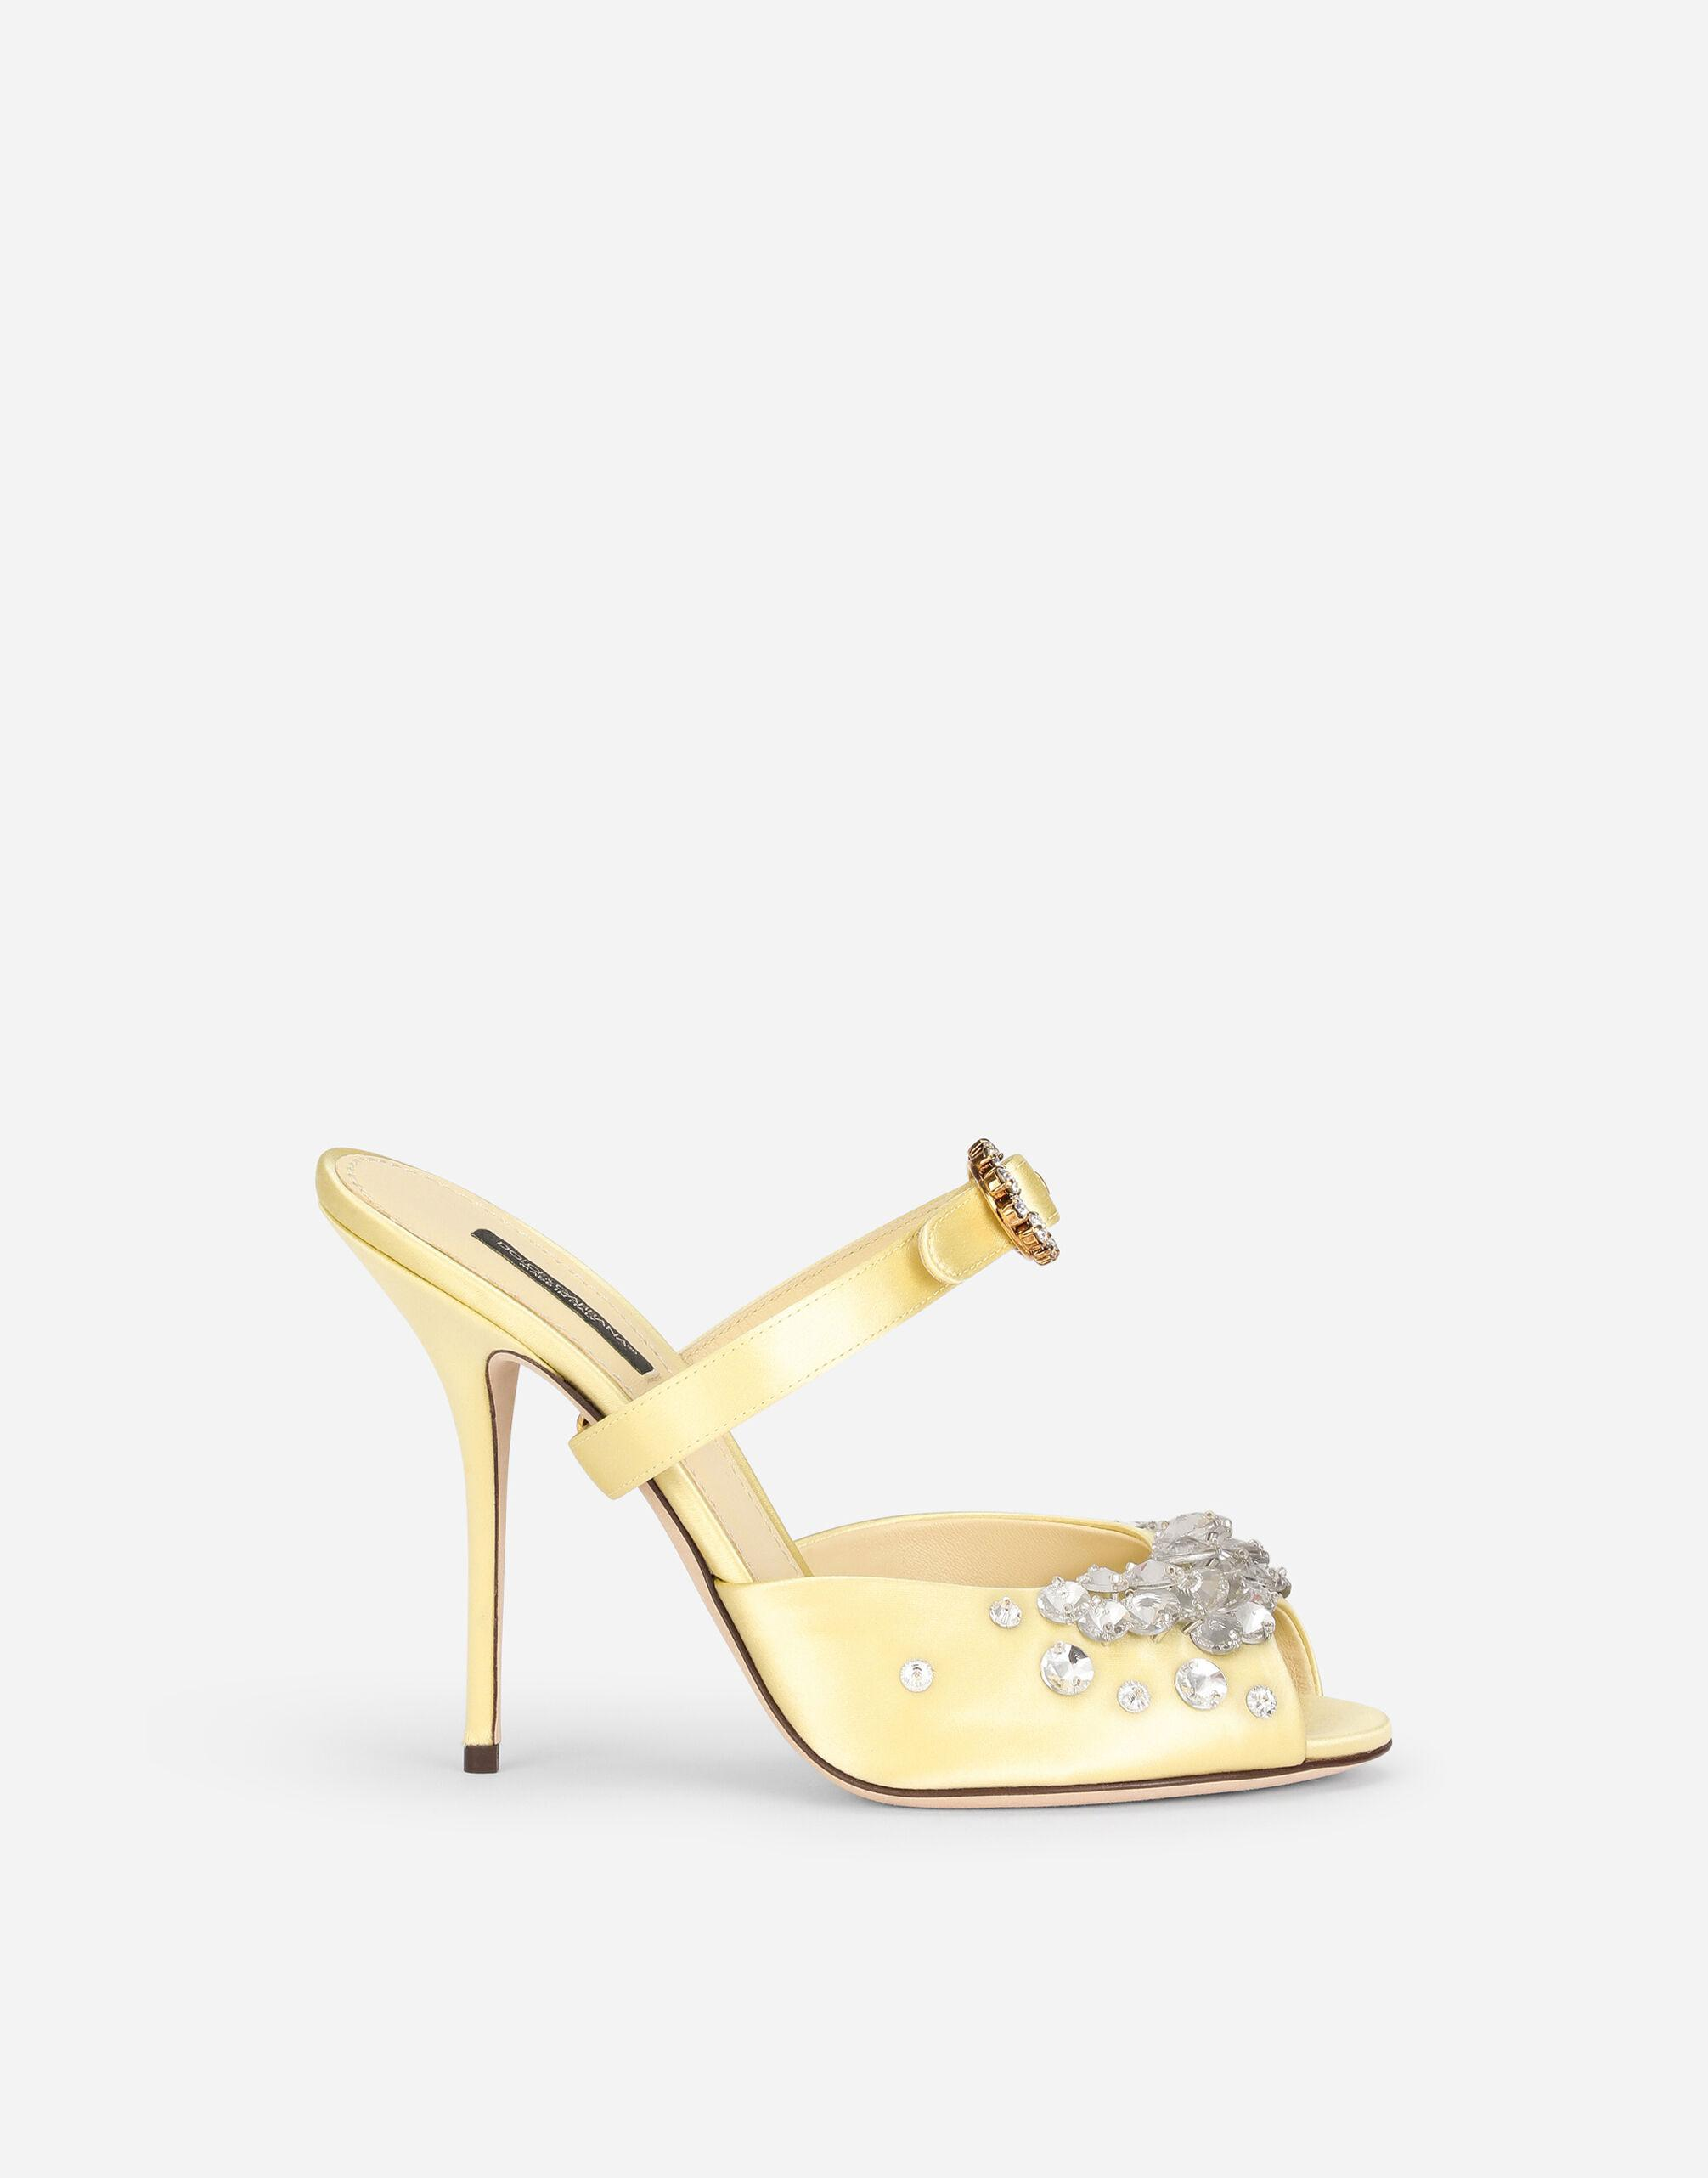 Satin mules with bejeweled embellishment